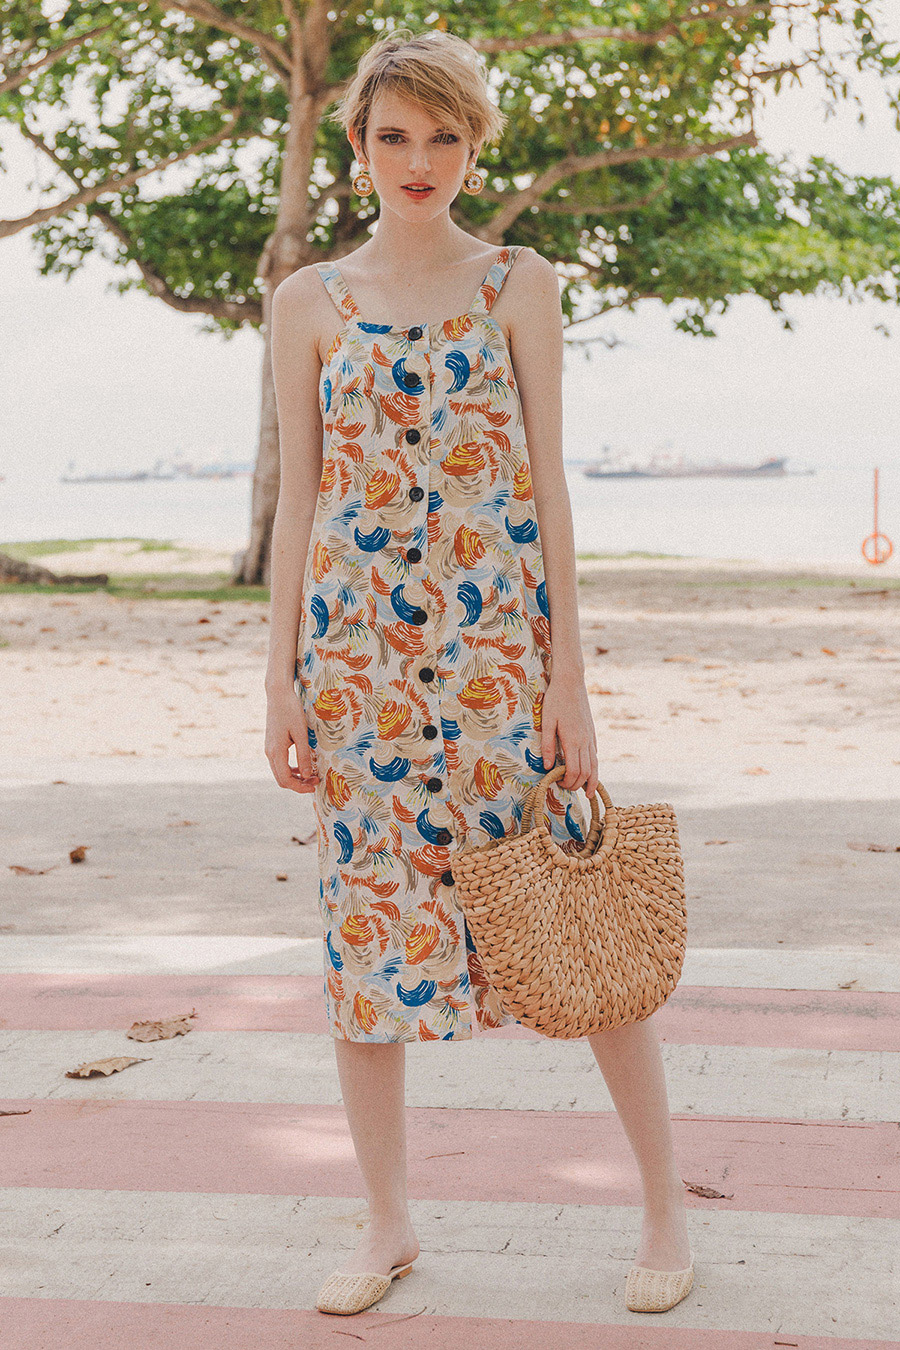 TAHITI THICK STRAP DRESS - SWIRL PRINT [BY MODPARADE]